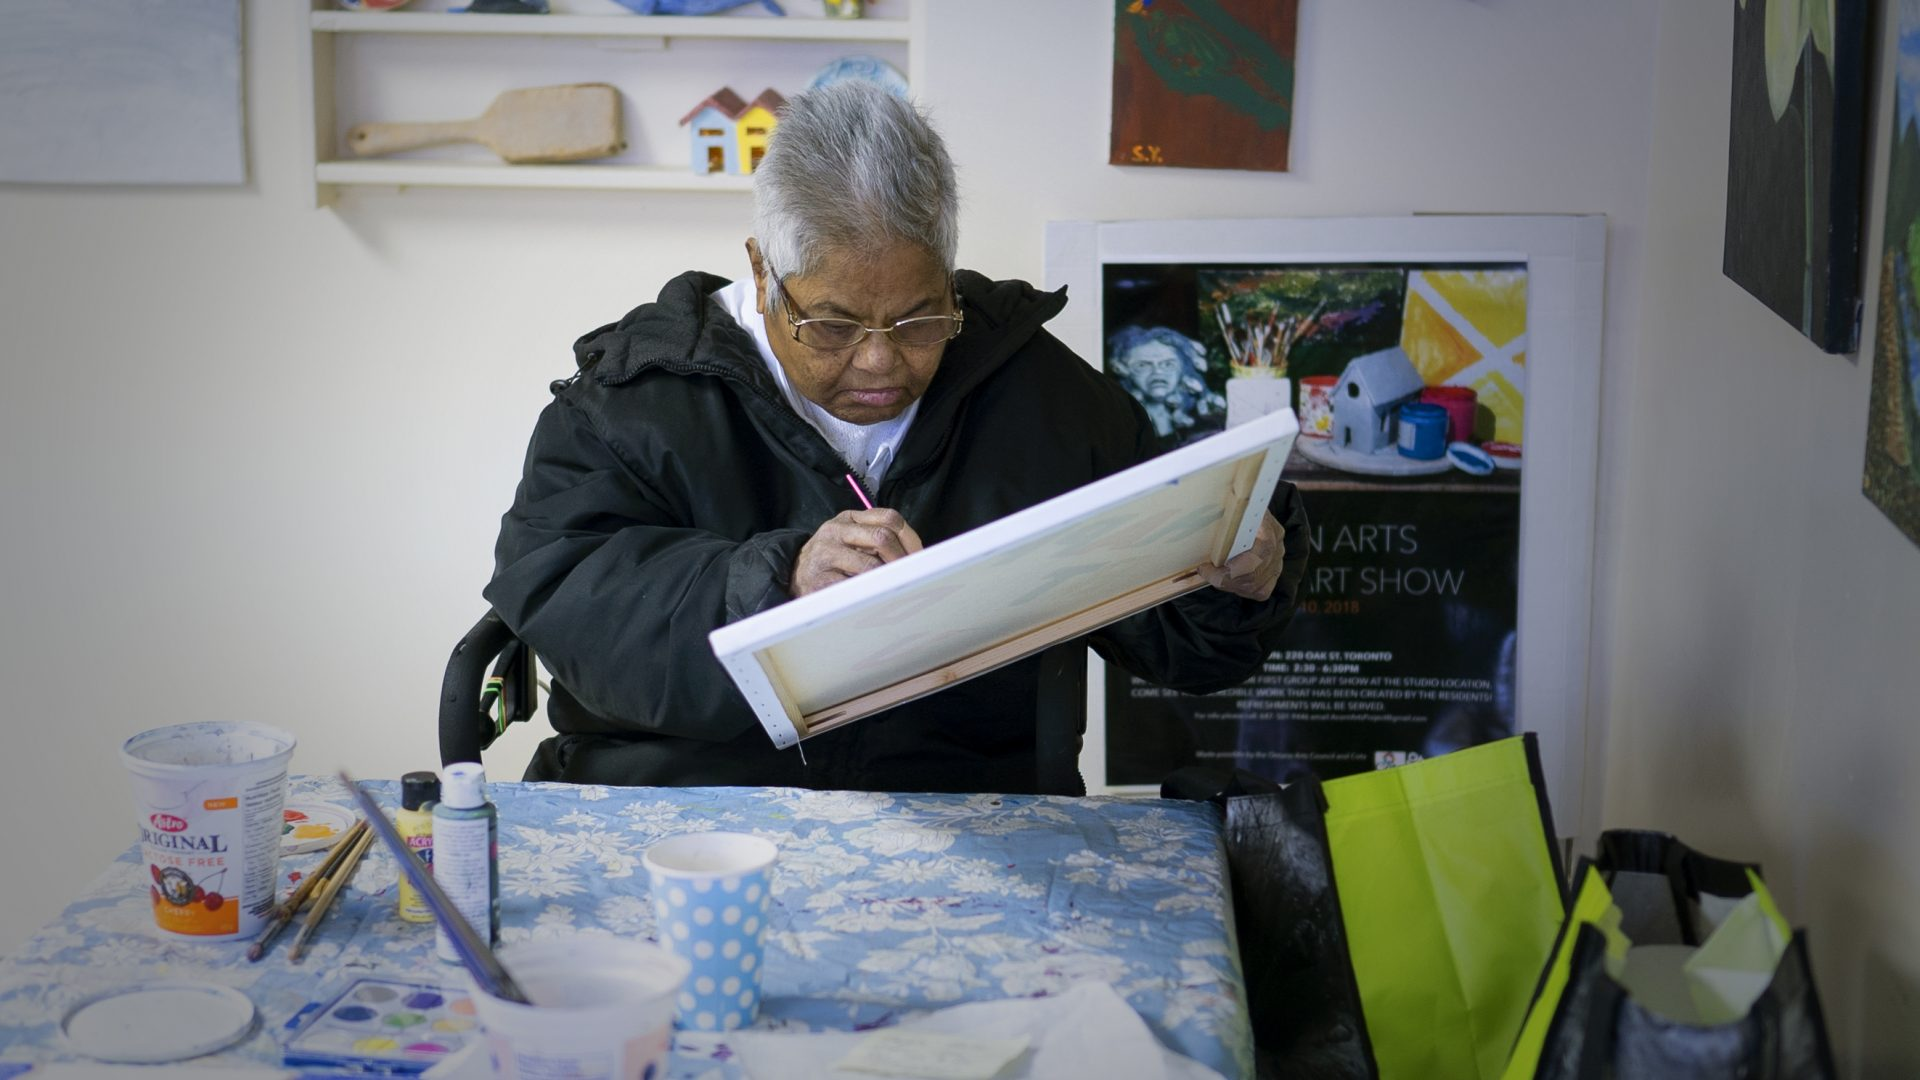 Residents attending Acorn Arts Project studio at 220 Oak Street, HHC Program